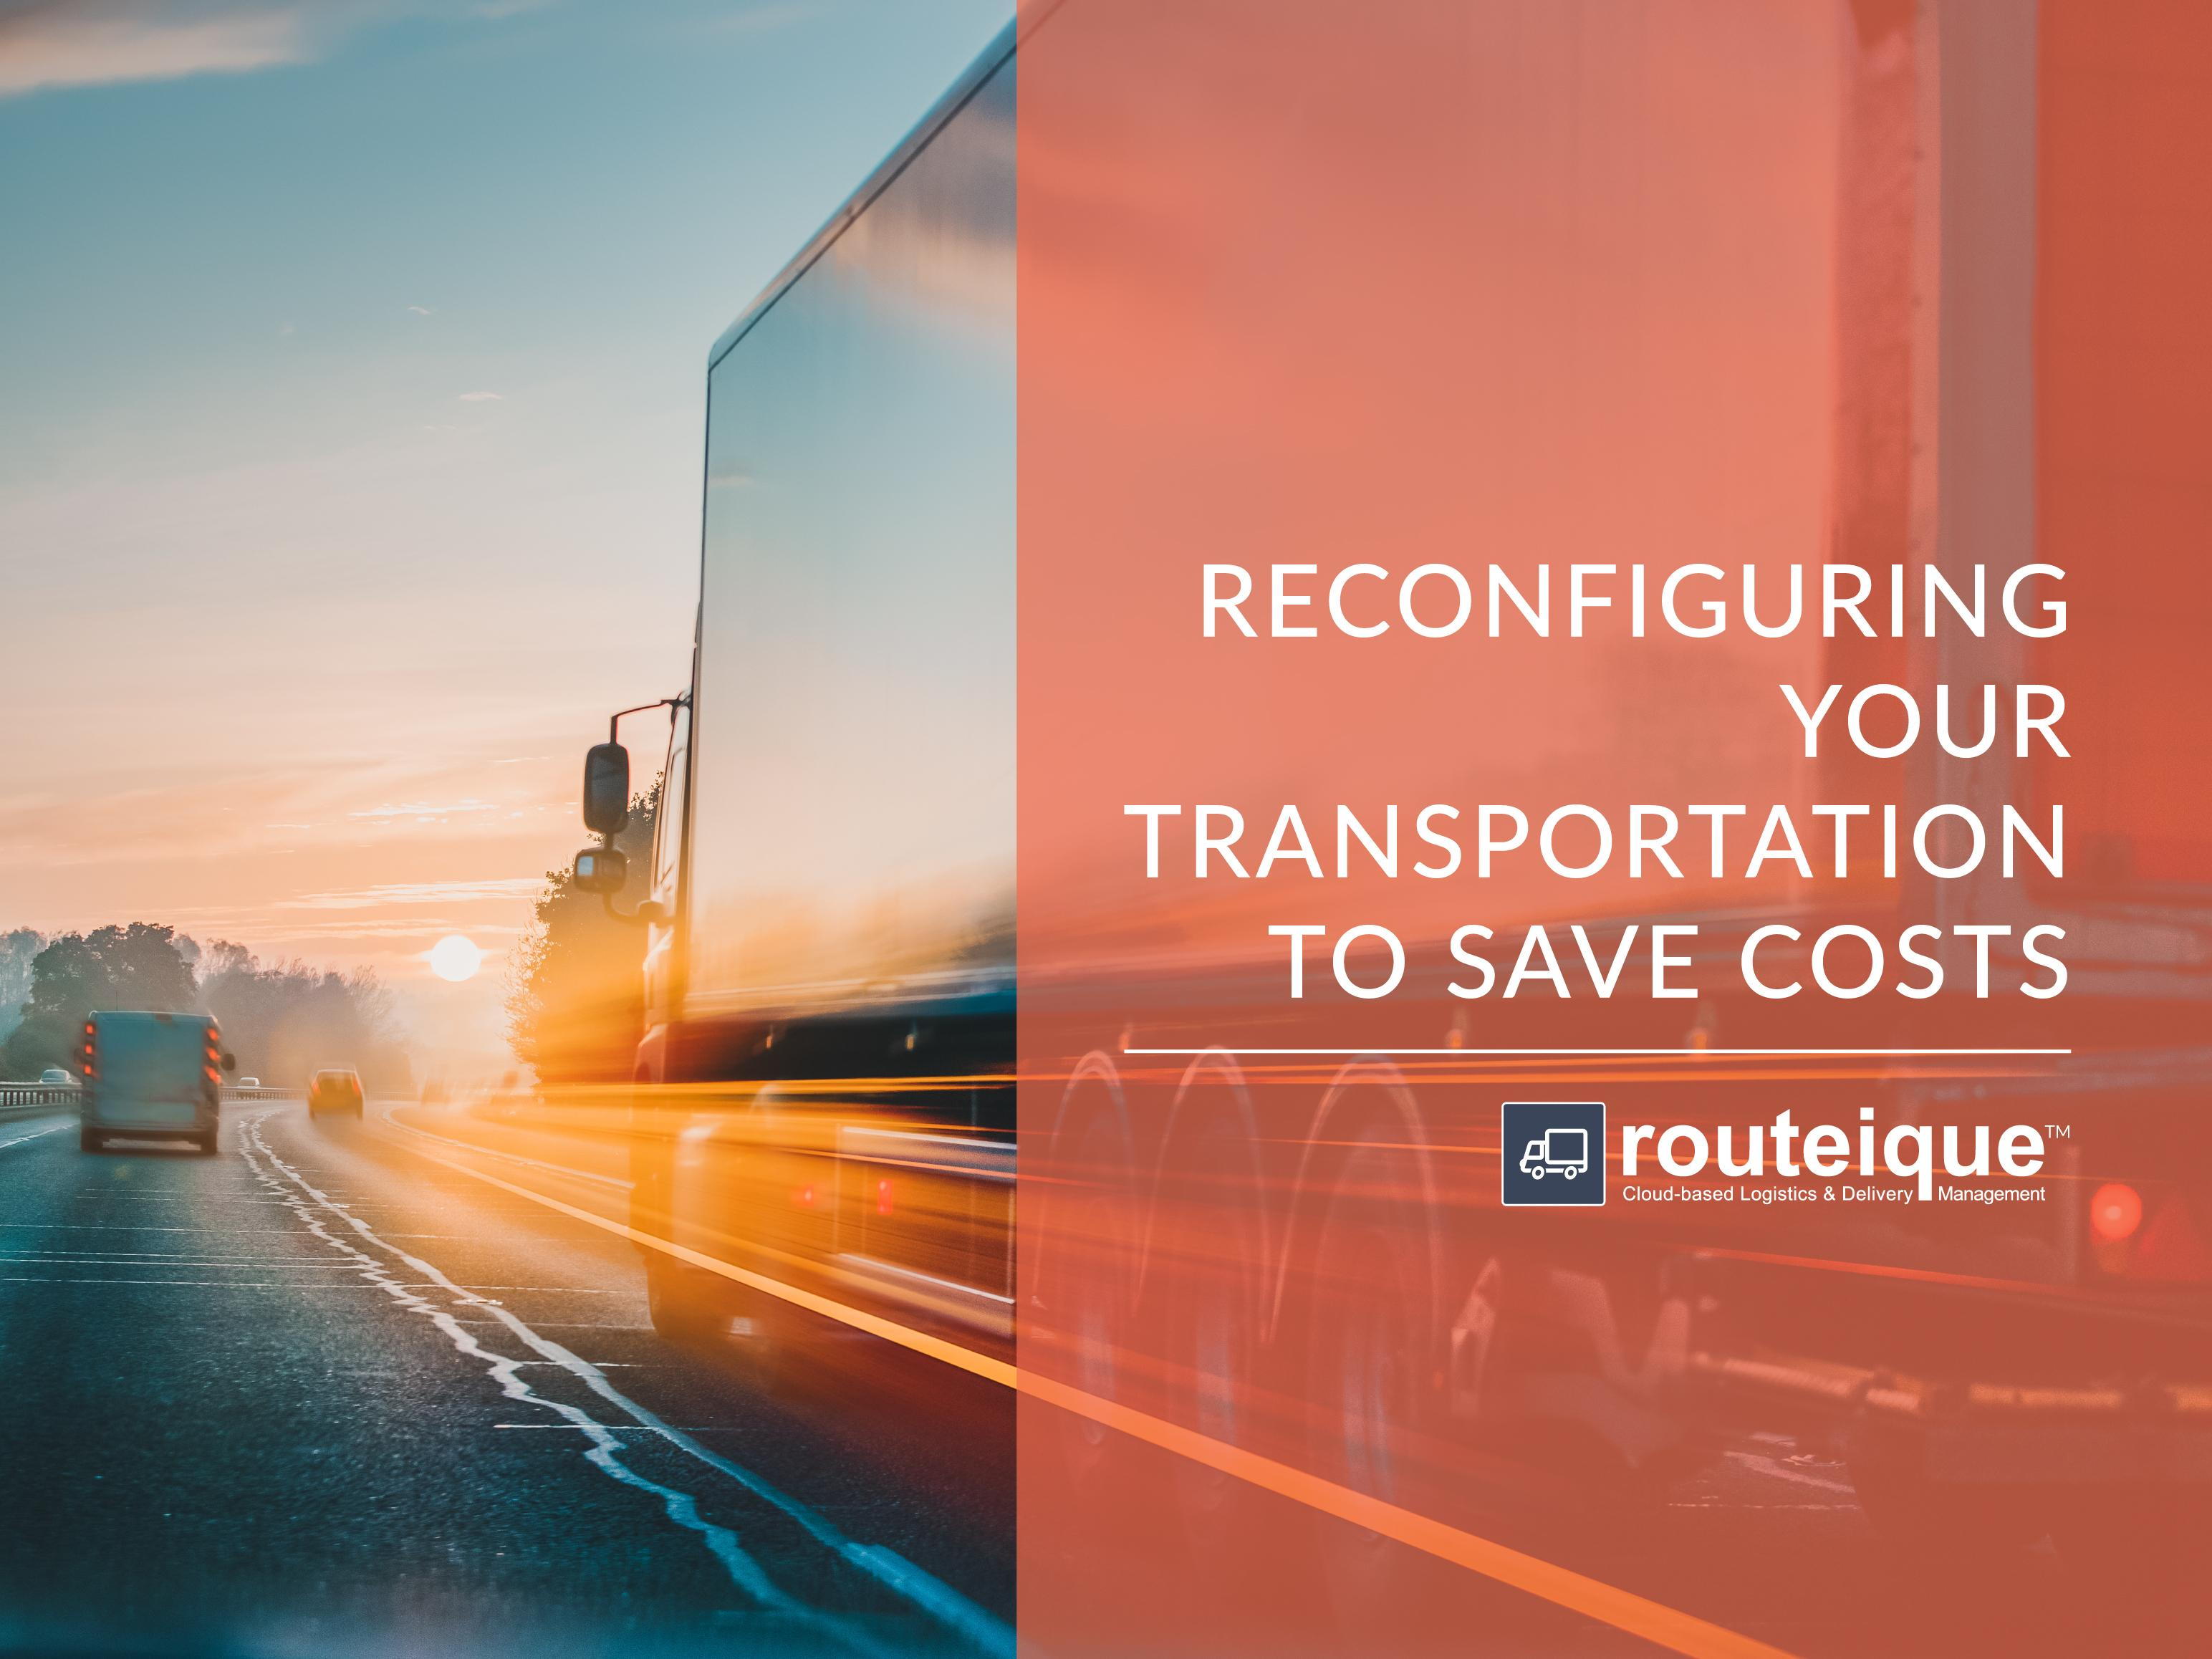 """Image of truck overlaid with text that says """"reconfiguring your transportation to save costs"""" overlaid with Routeique logo"""